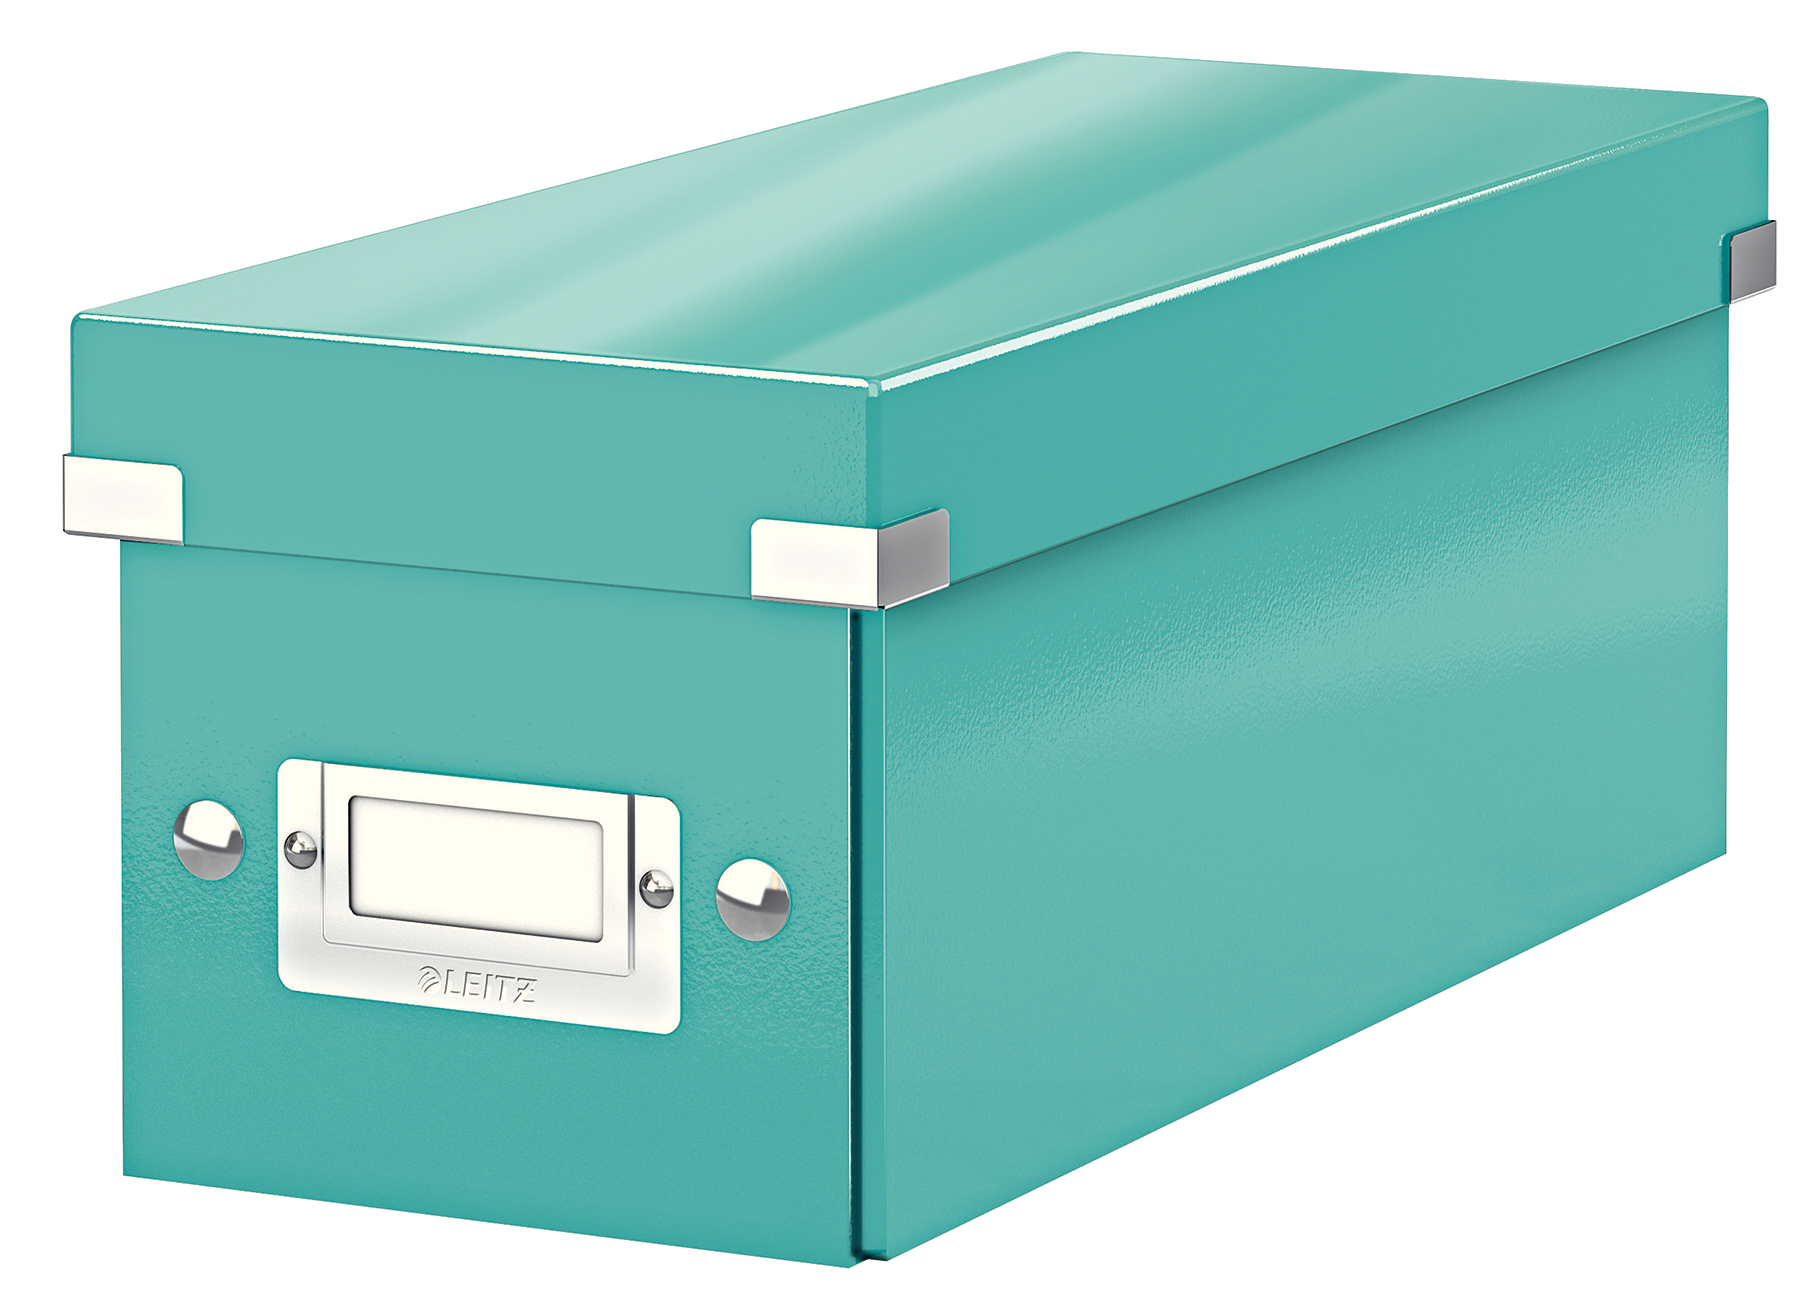 esselte Leitz Click & Store Cd Storage Box Ice Blue 60410051 - AD01